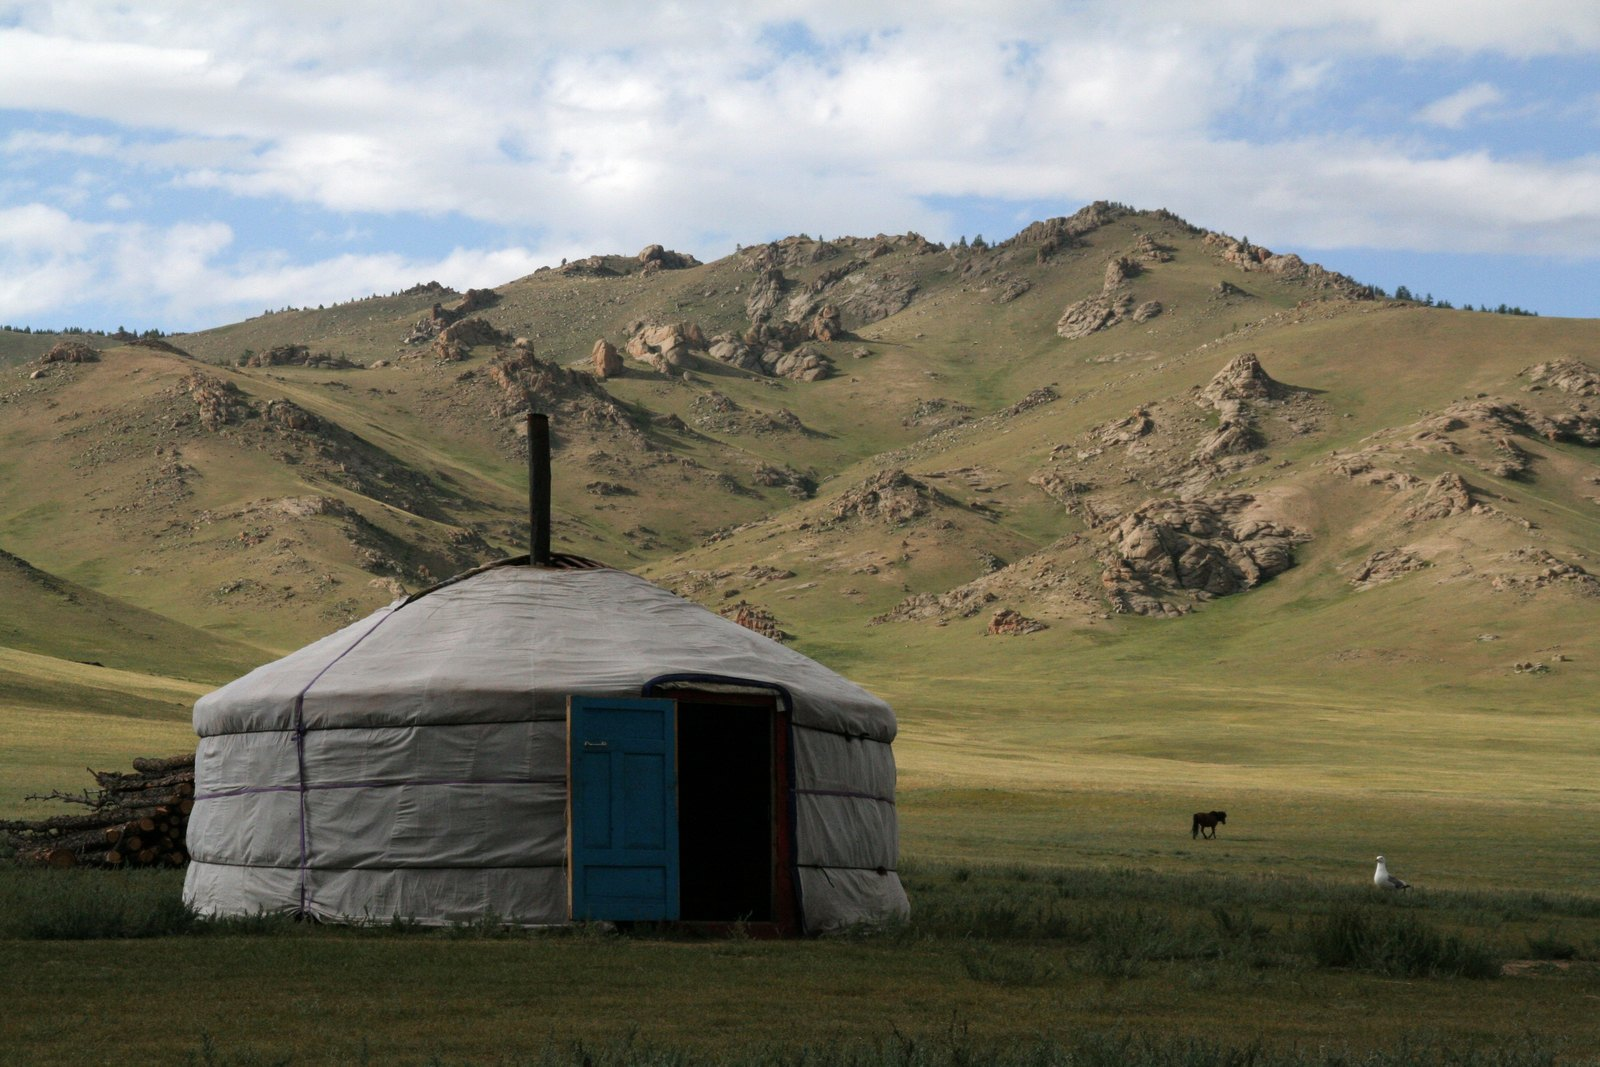 Mongolie: into the wild